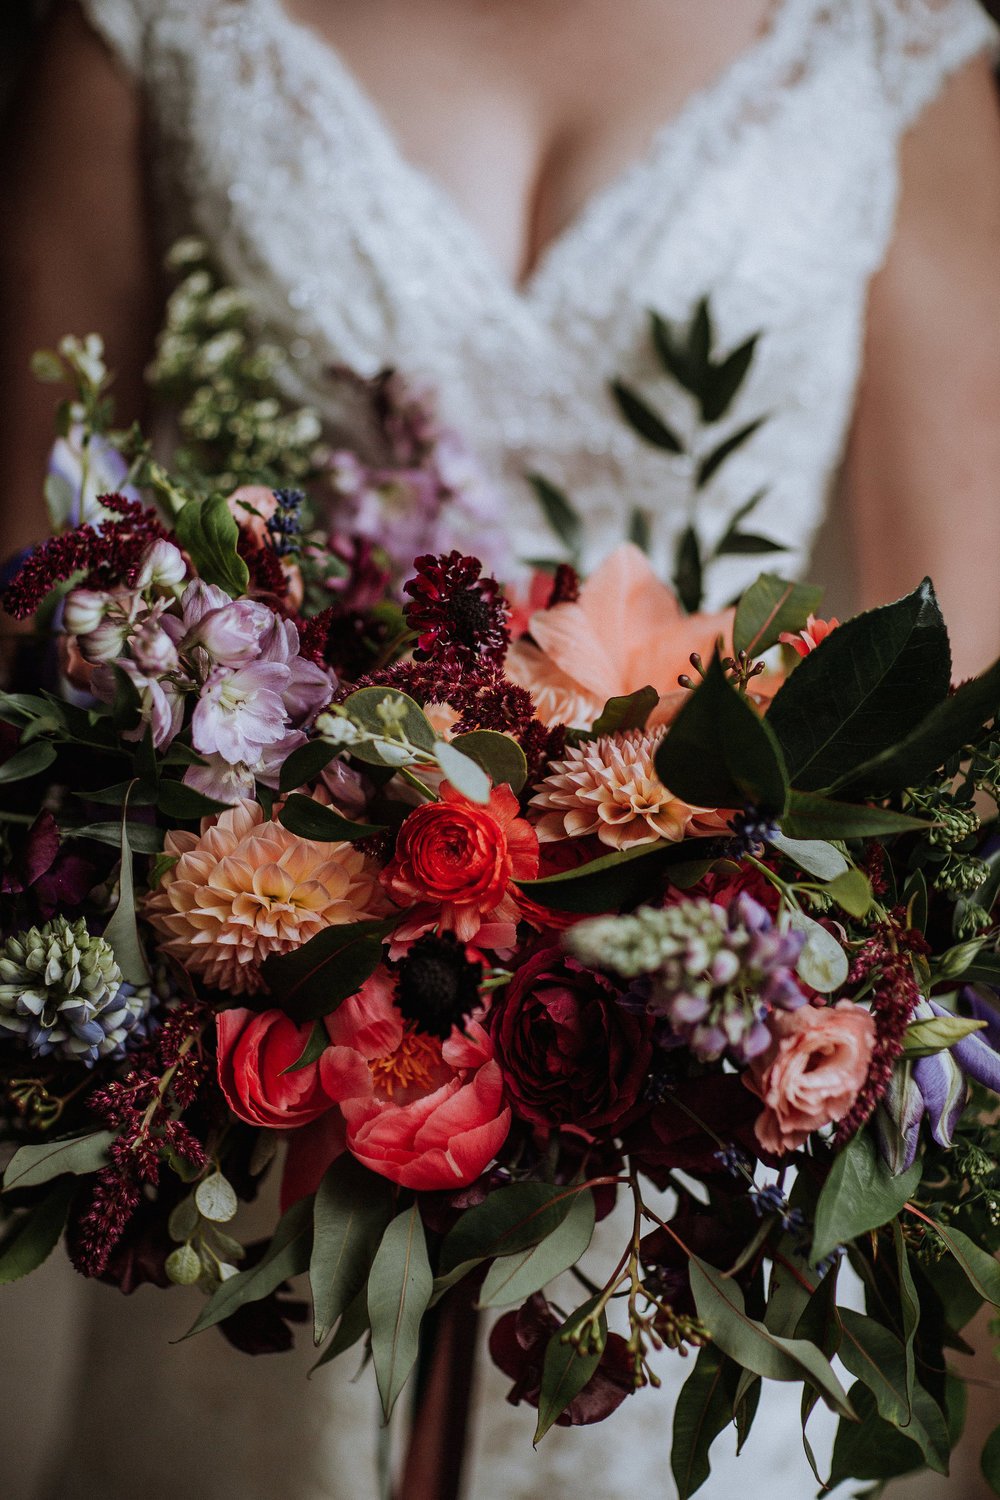 Colorful and natural bridal bouquet by Venn Floral in Healdsburg, California photographed by Gretchen Gause at Villa Chanticleer.